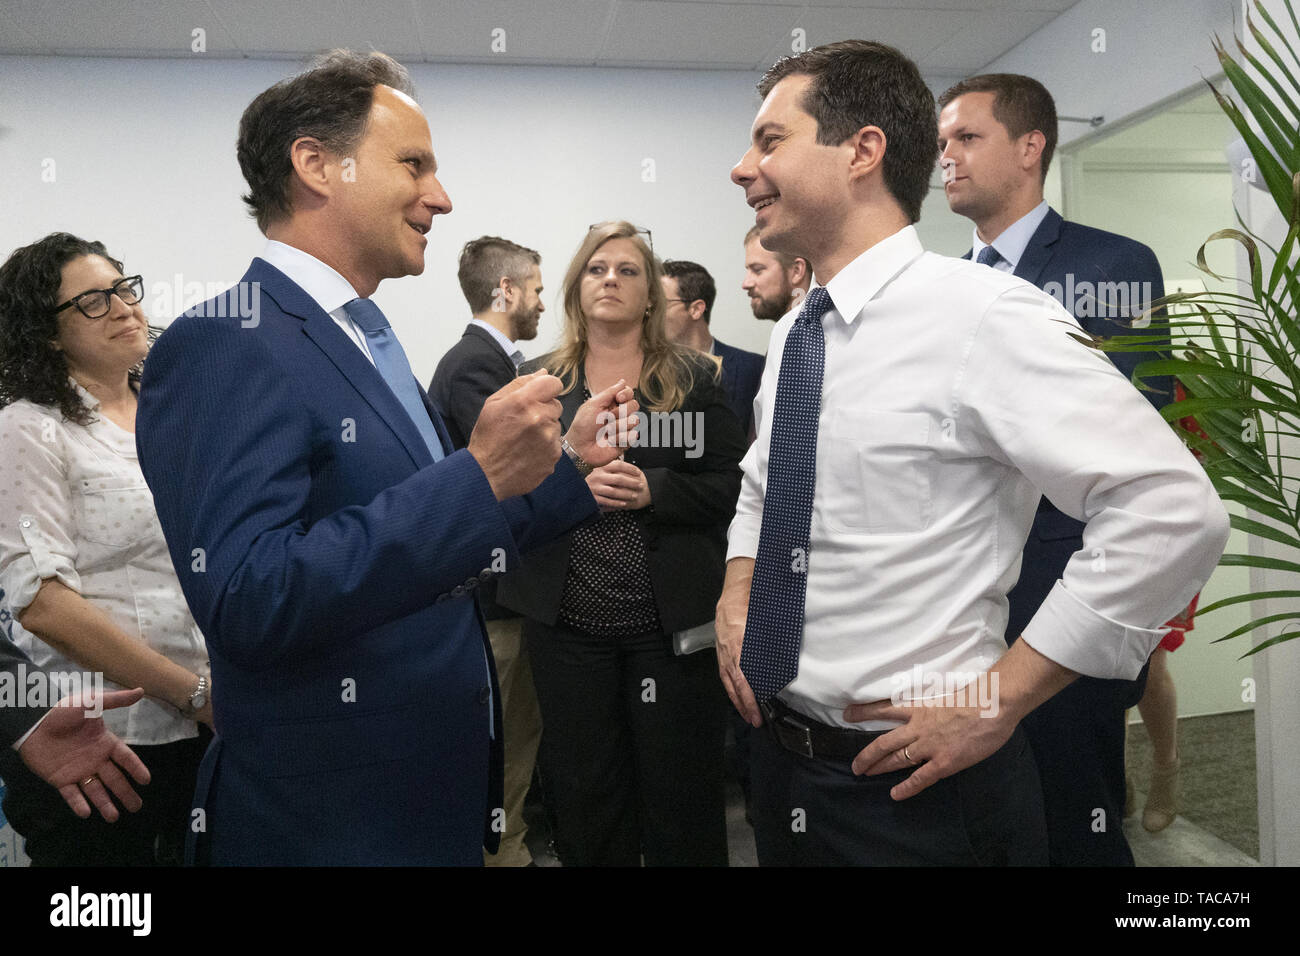 Washington, District of Columbia, USA. 23rd May, 2019. Rabbi Jonah Pesner, director of the Religious Action Center of Reform Judaism, meets with Mayor Pete Buttigieg as he enters a discussion with leaders of the Jewish community at a communal parlor meeting at the offices of Bluelight Strategies in Washington, DC, U.S. on May 23, 2019. Credit: Stefani Reynolds/CNP/ZUMA Wire/Alamy Live News - Stock Image